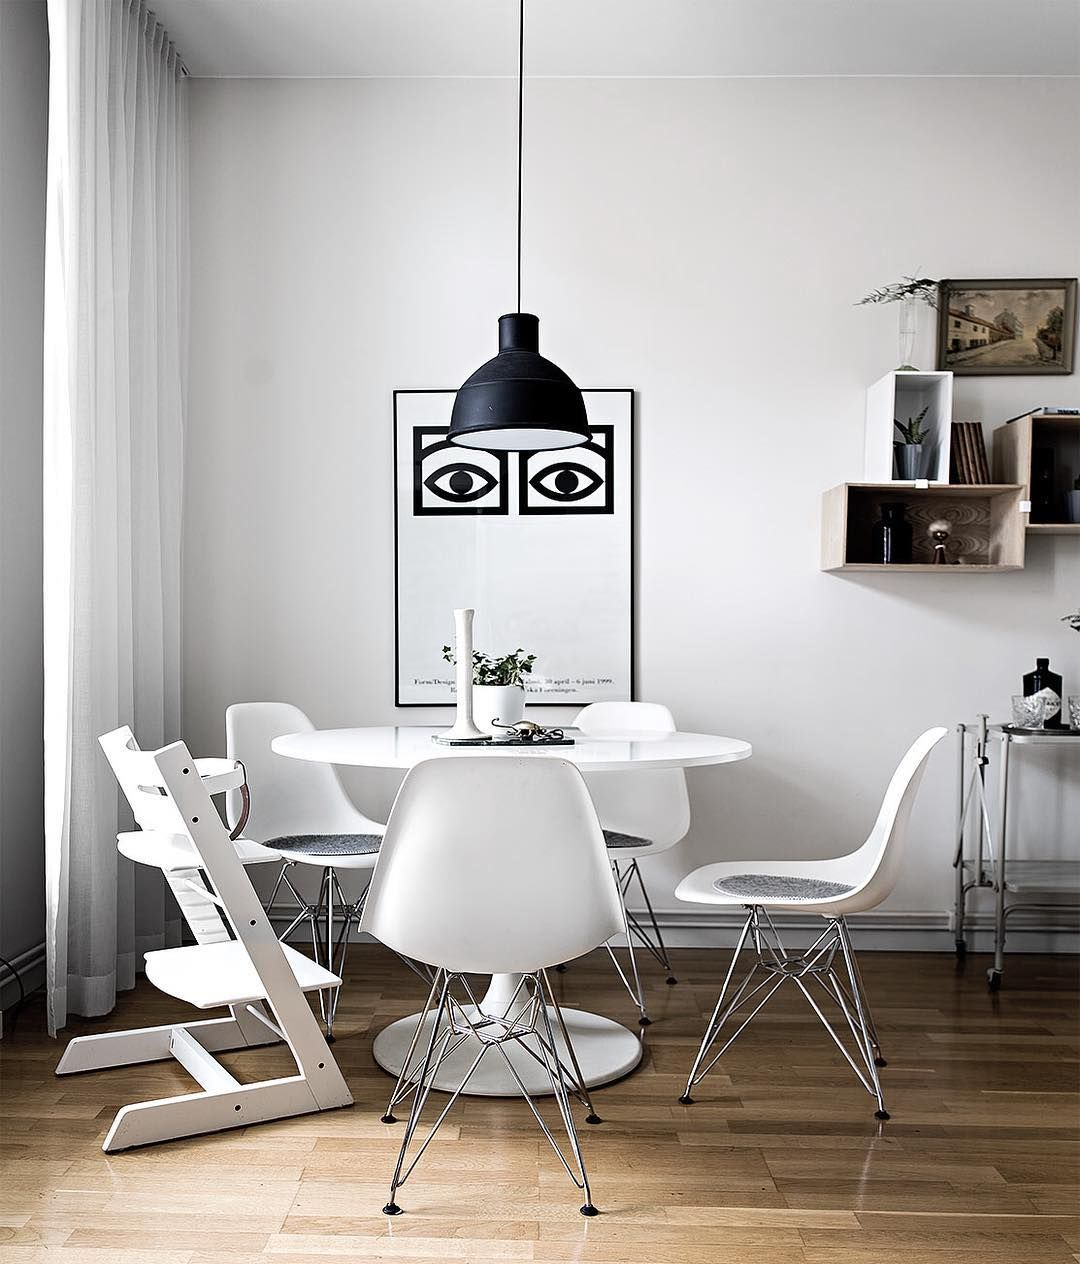 Ikea \'Docksta\' tulipe table @mainstreetsthlm | Cuisine | Pinterest ...